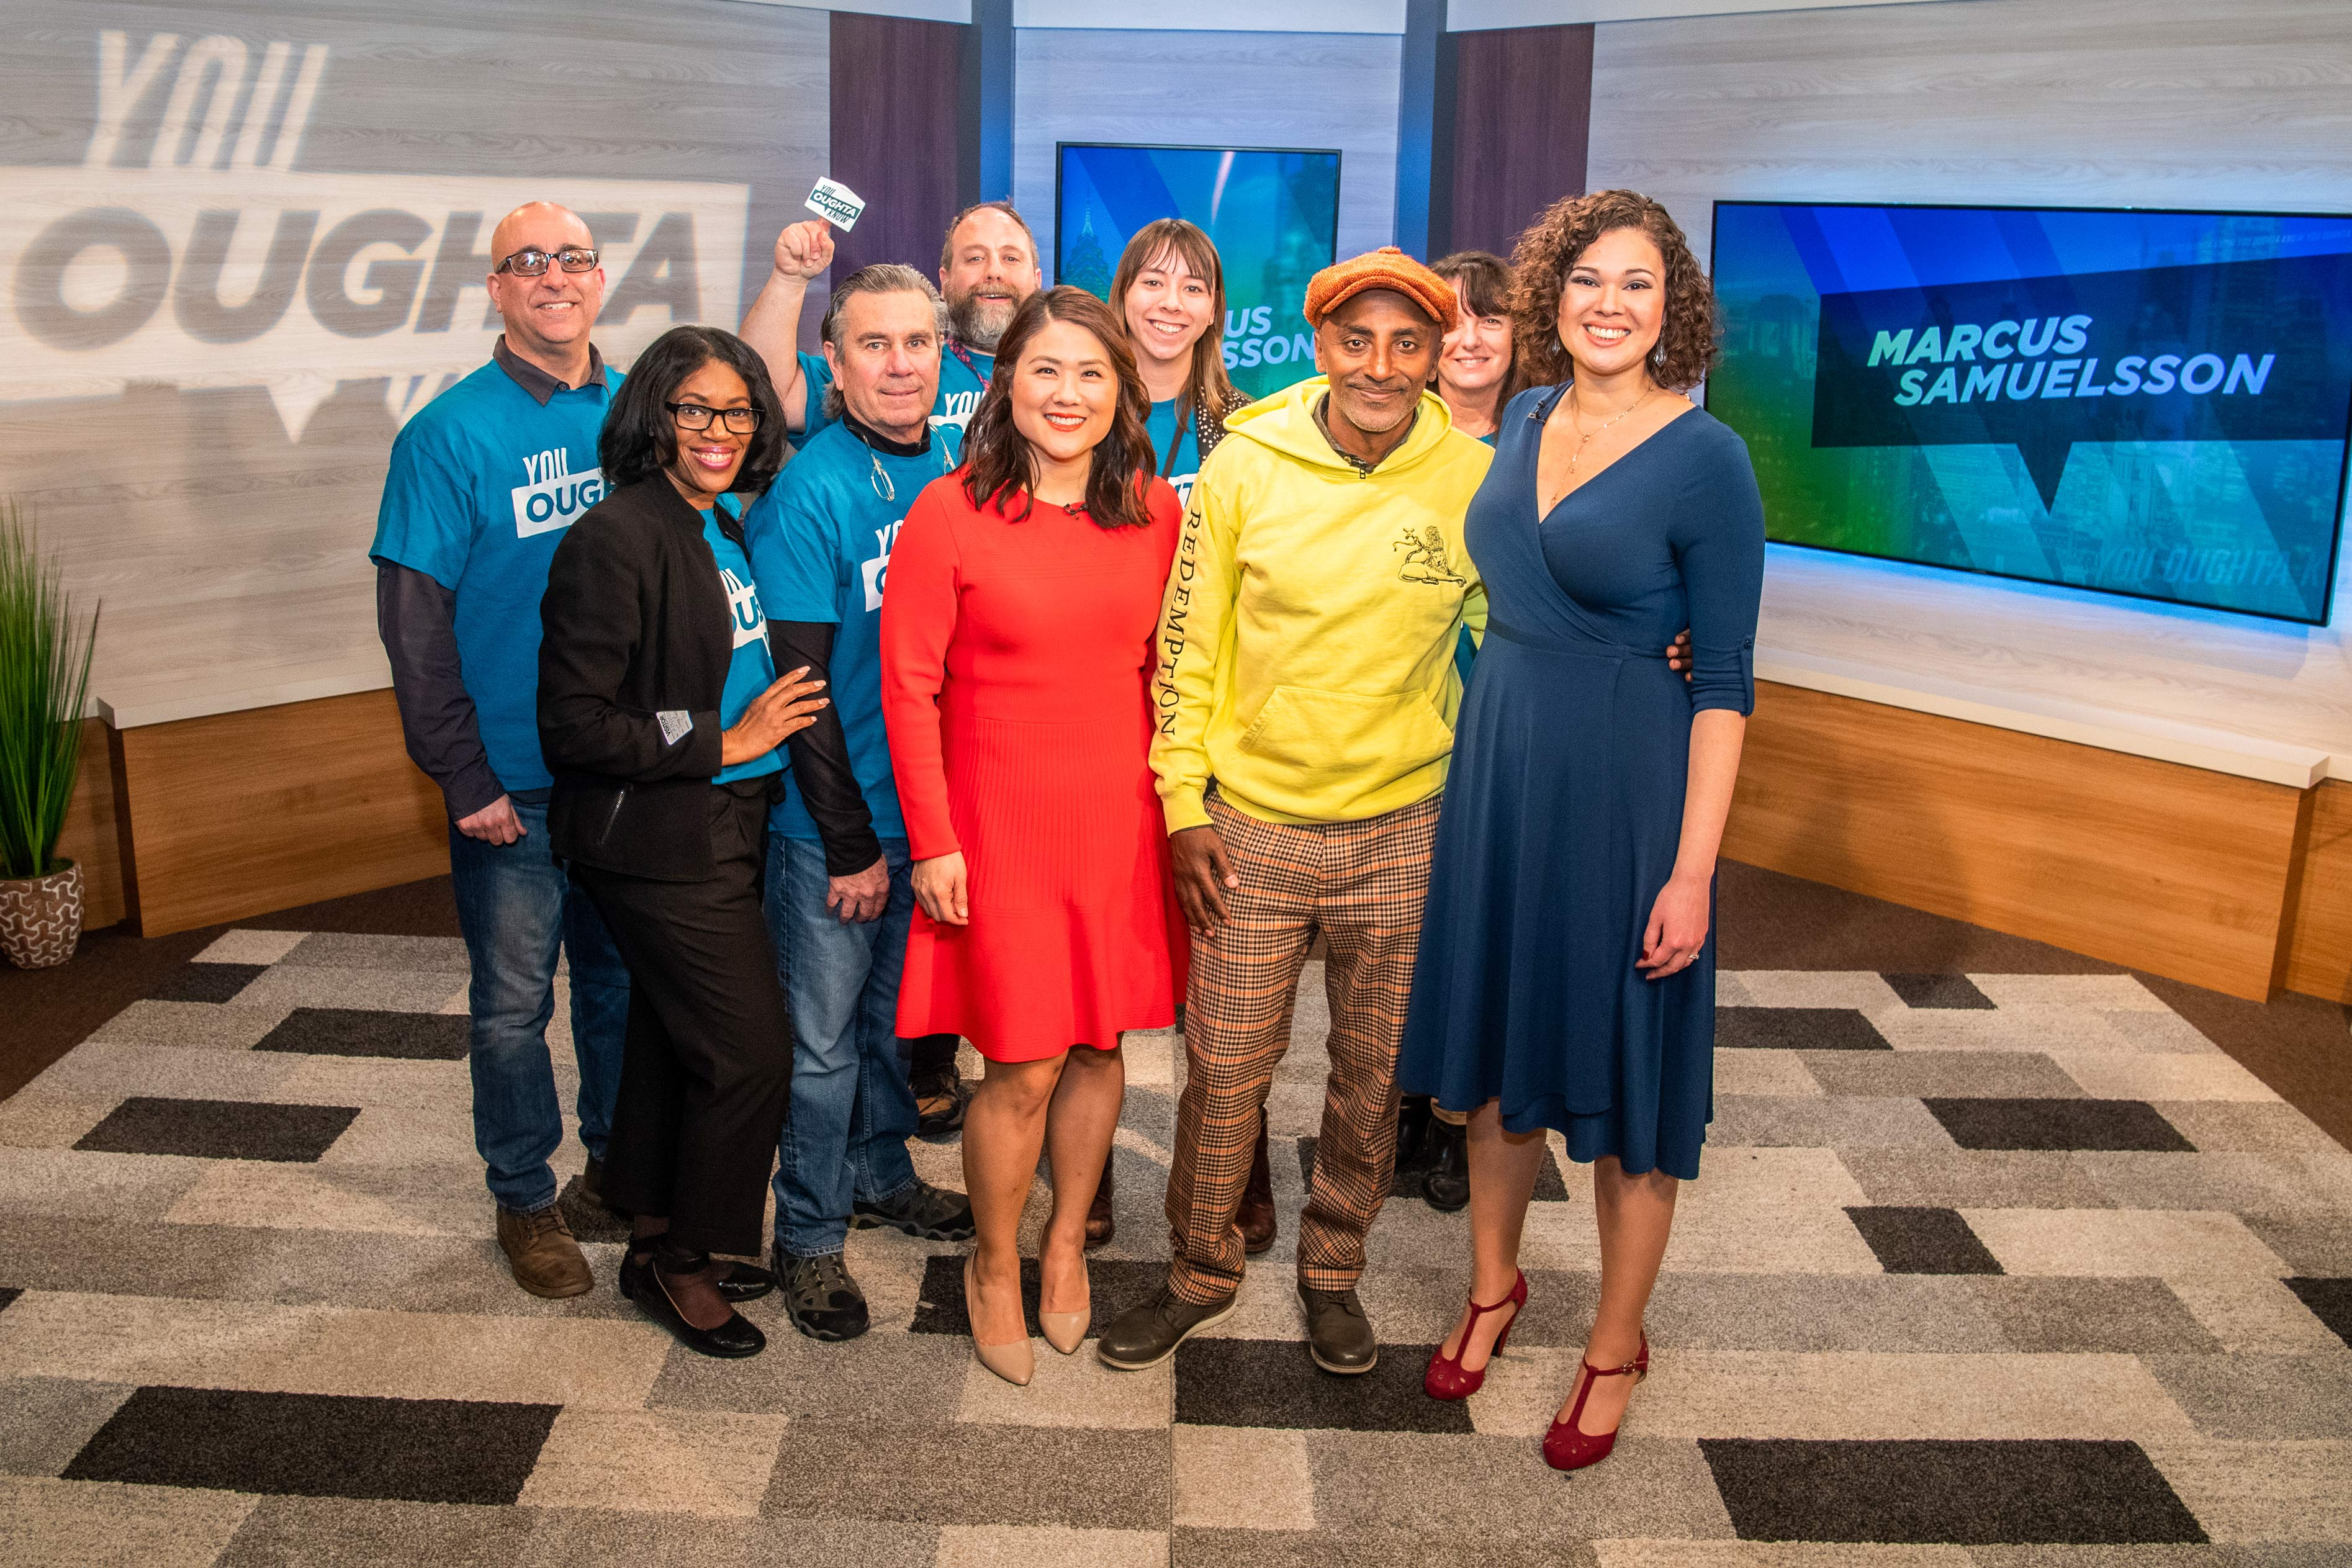 Marcus Samuelsson with You Oughta Know hosts Regina Mitchell and Shirley Min